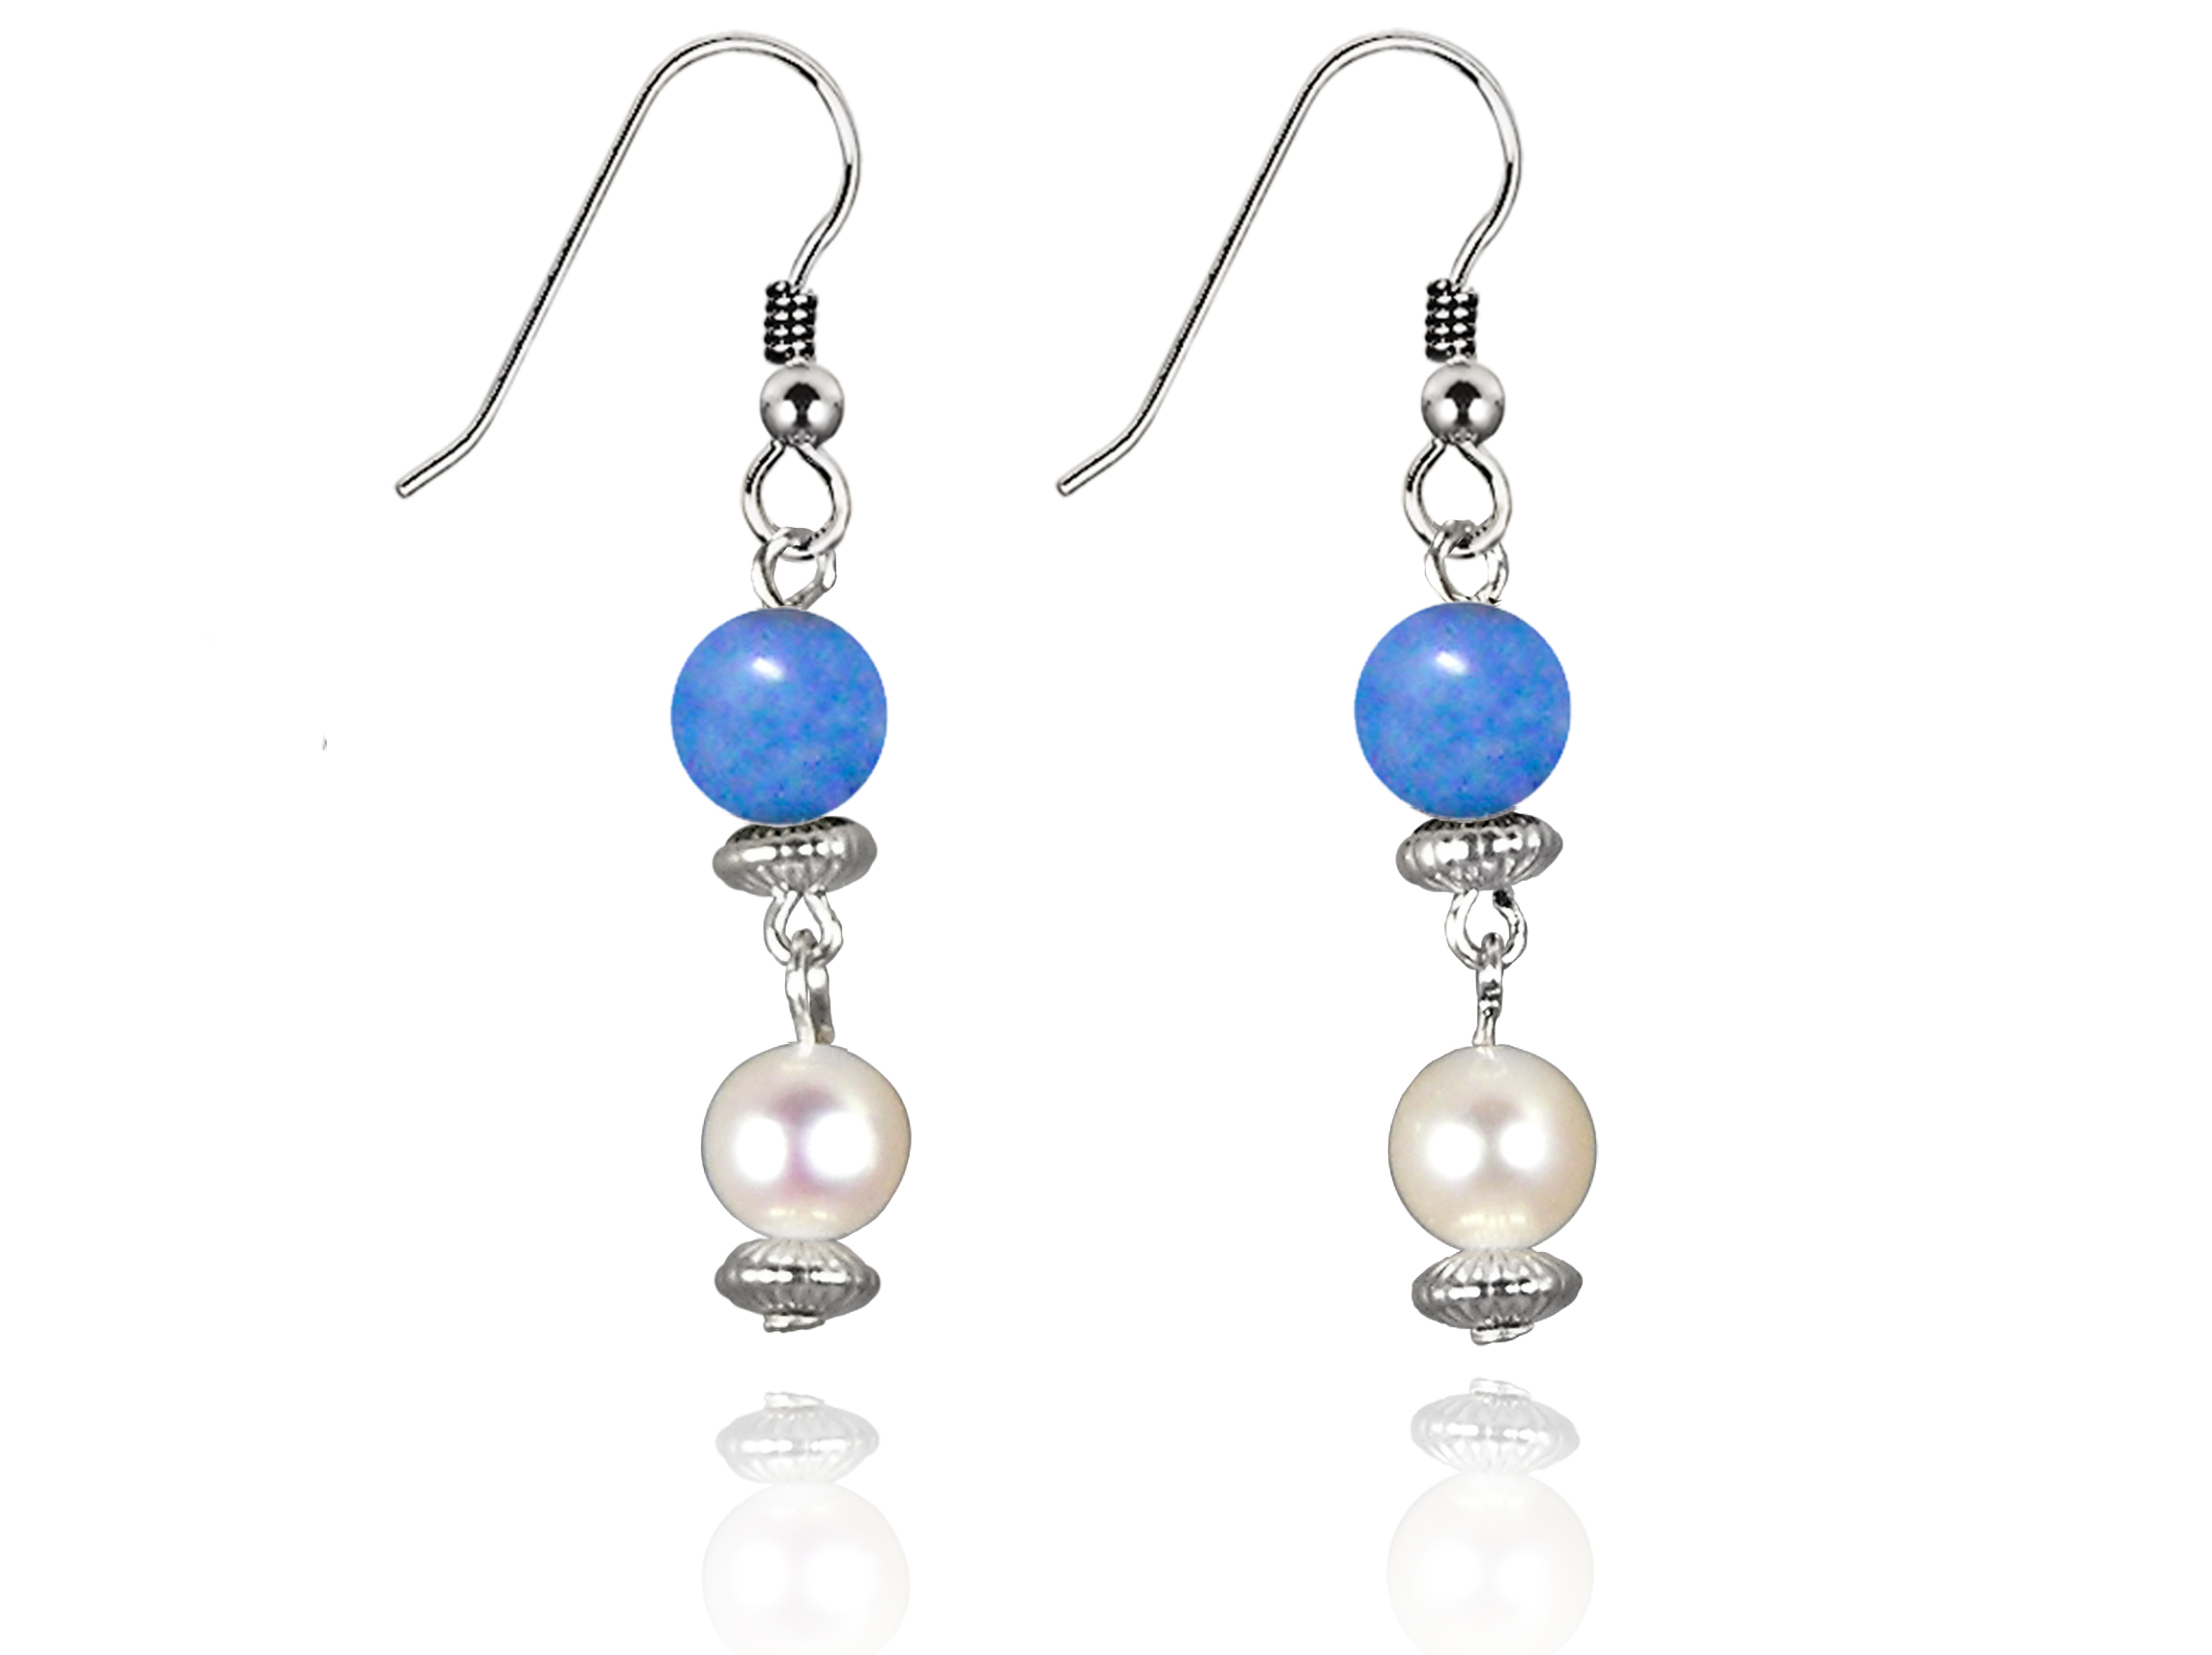 Freshwater Pearl Earrings with Blue Quartz in Sterling Silver